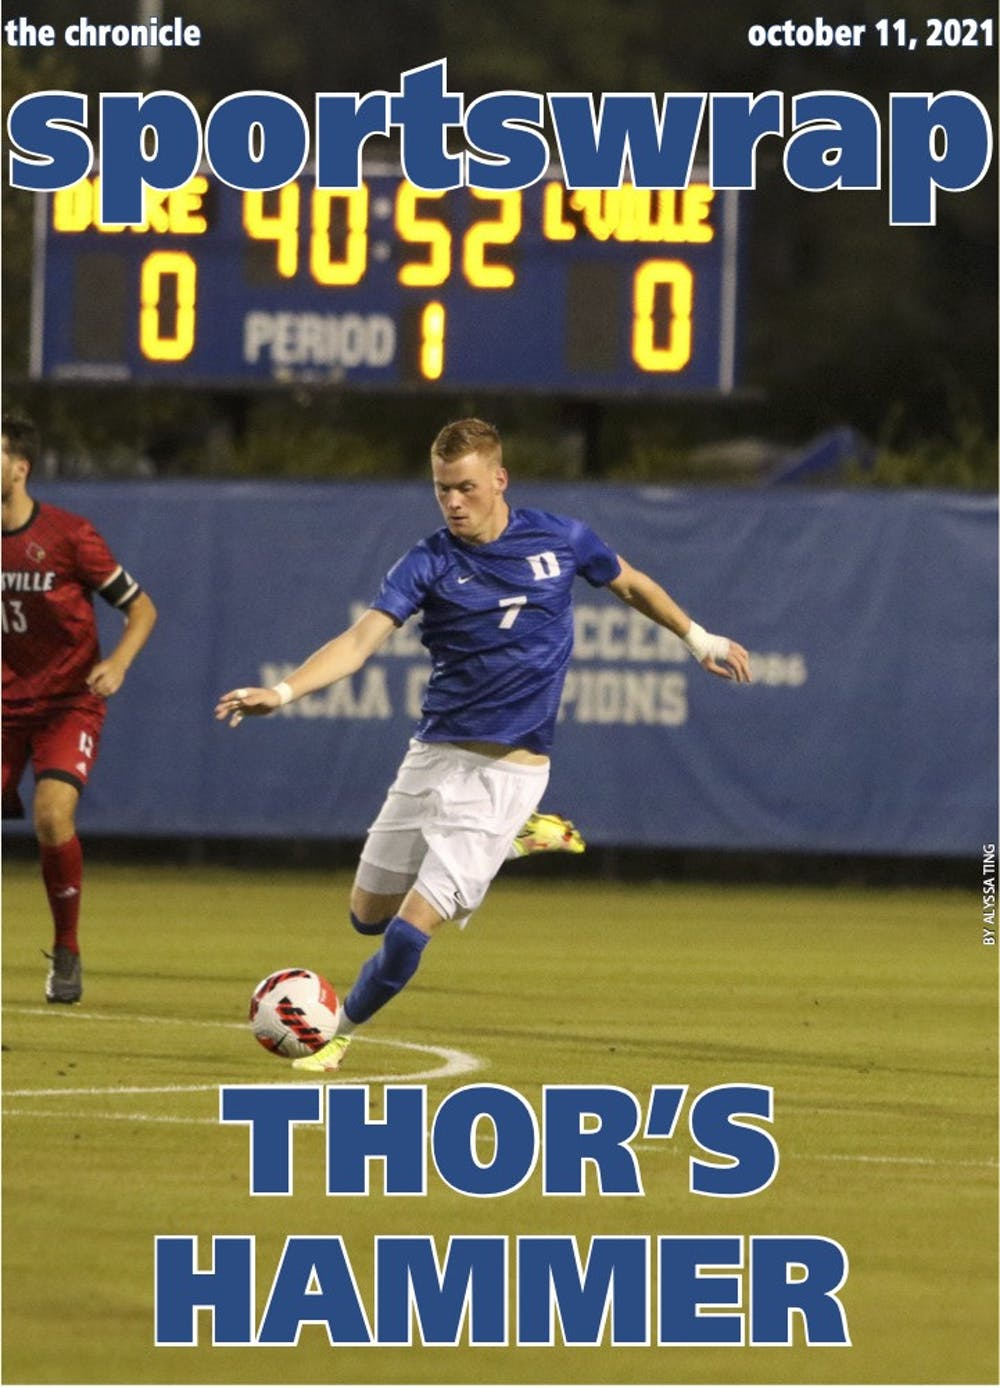 Sophomore Thorleifur Ulfarsson is leading the ACC in goals with nine.